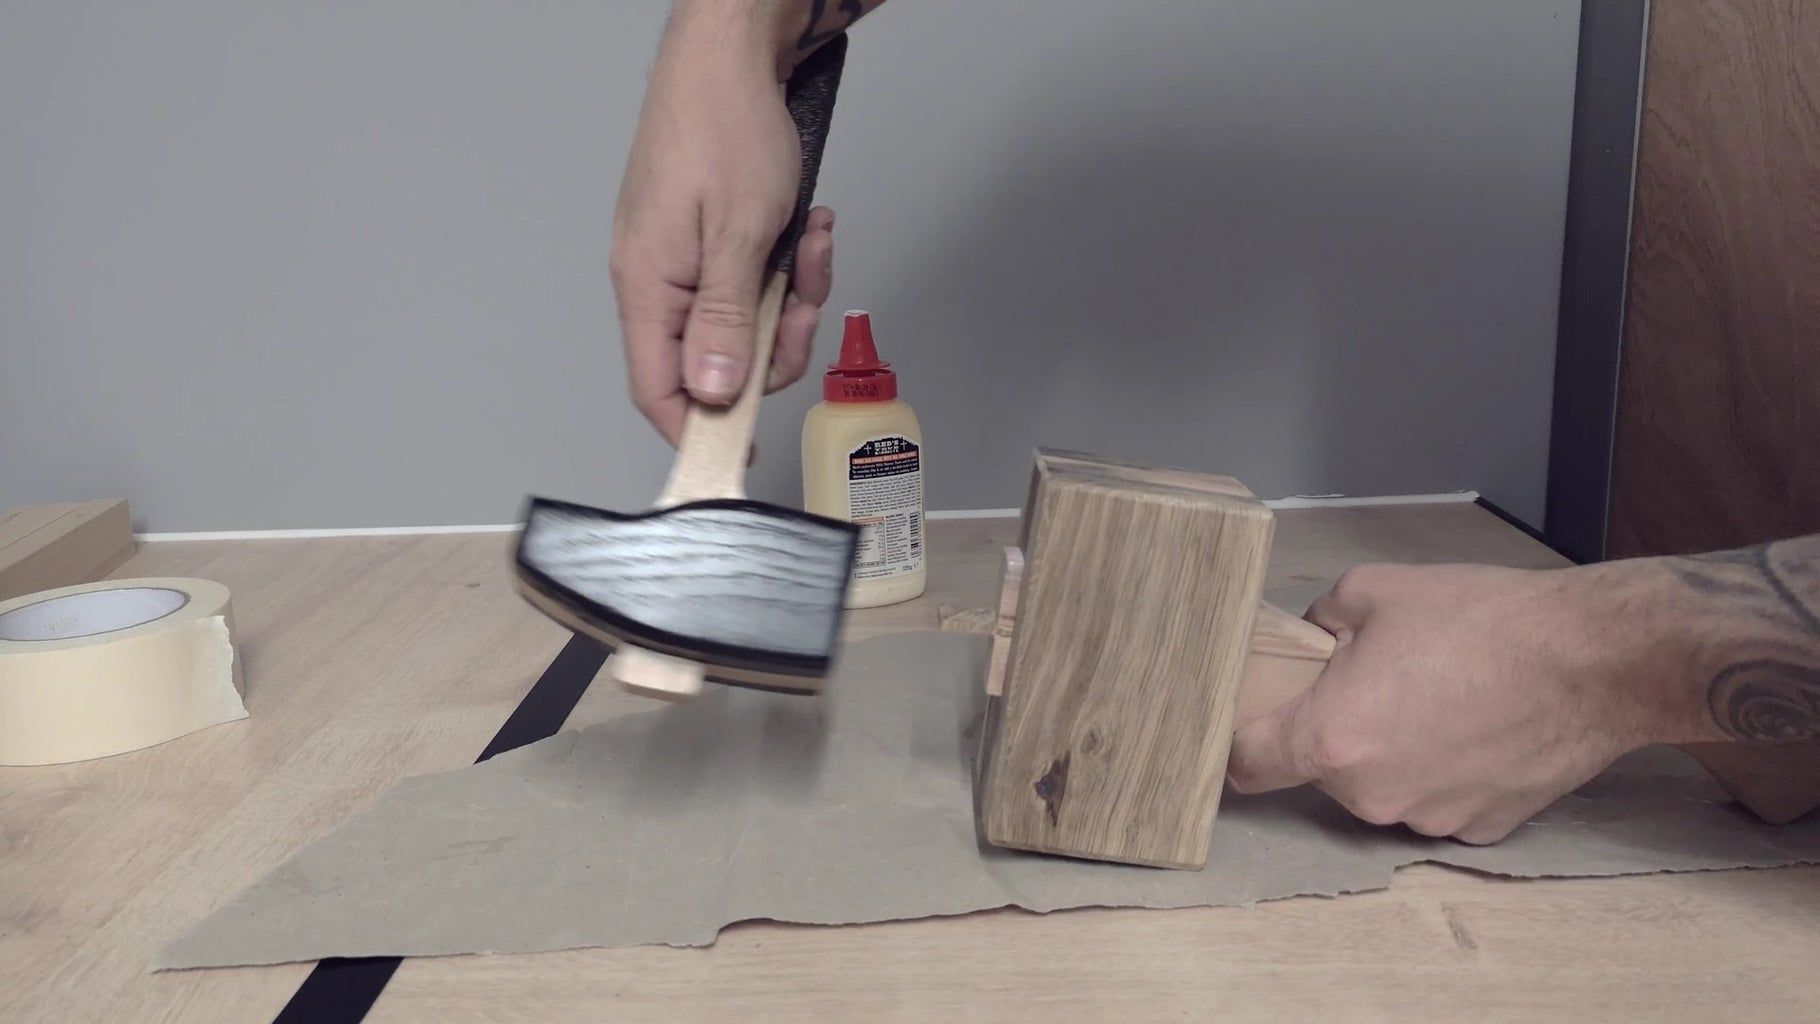 Fitting the Handle to the Head